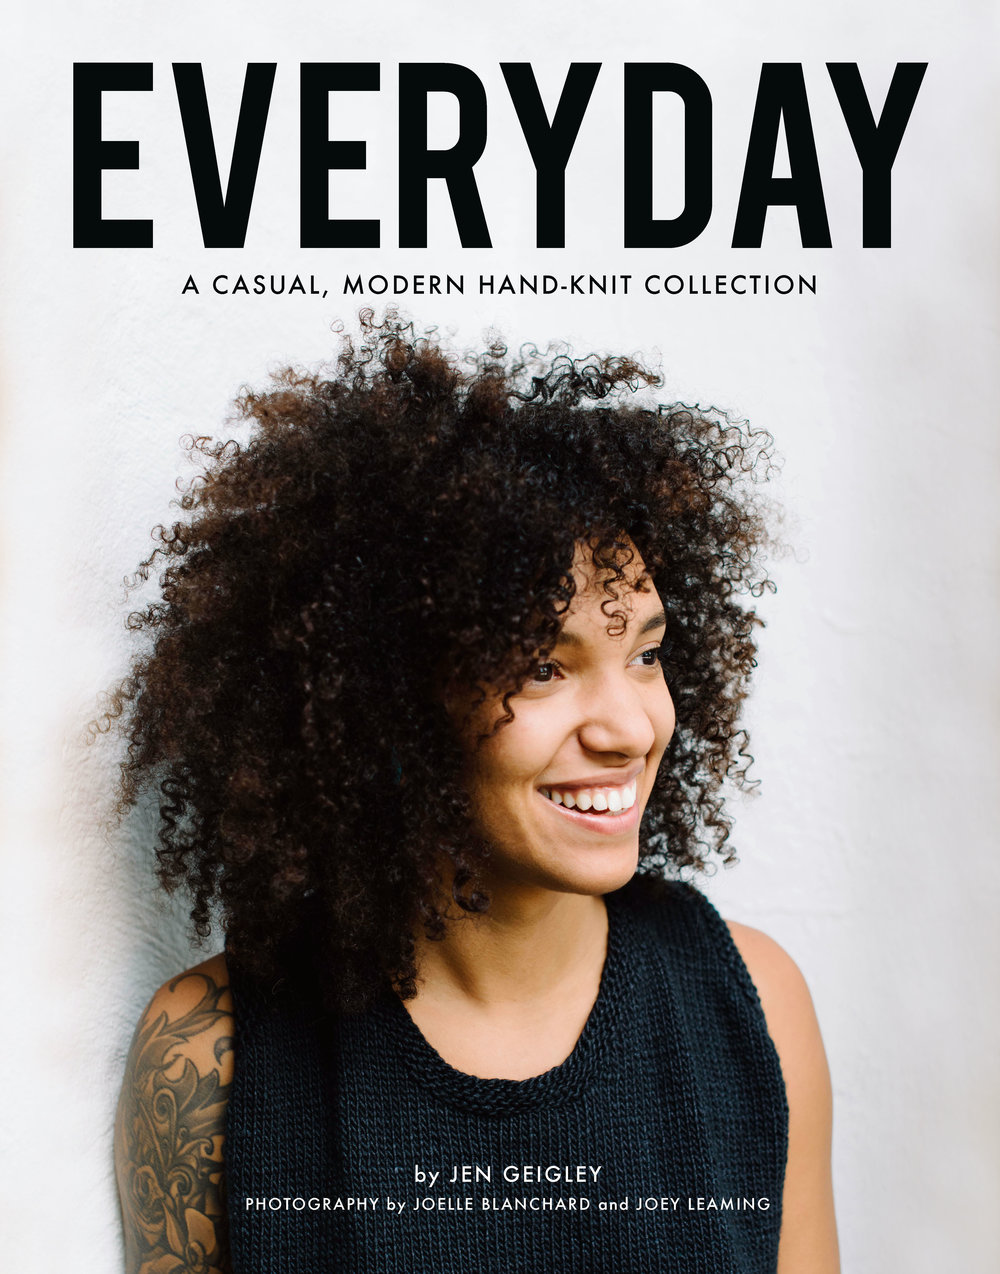 NEW BOOK! 'EVERYDAY' will be released on OCTOBER 31, 2016!